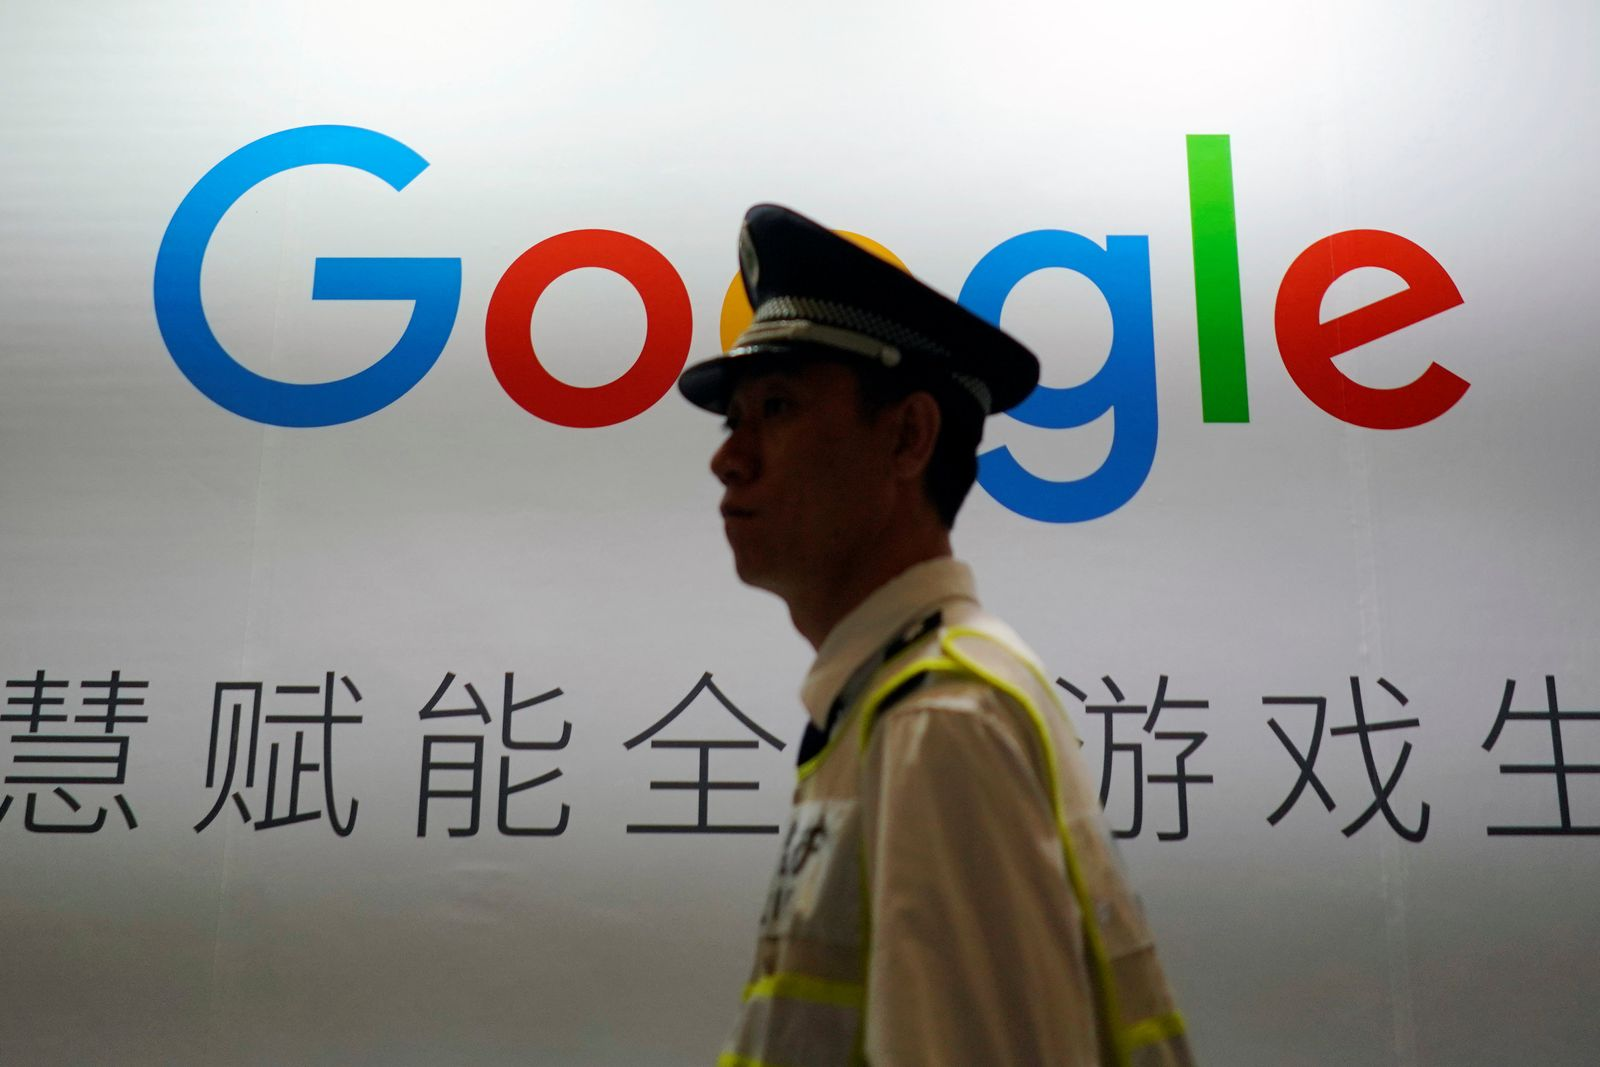 A Google sign is seen during the China Digital Entertainment Expo and Conference (ChinaJoy) in Shanghai